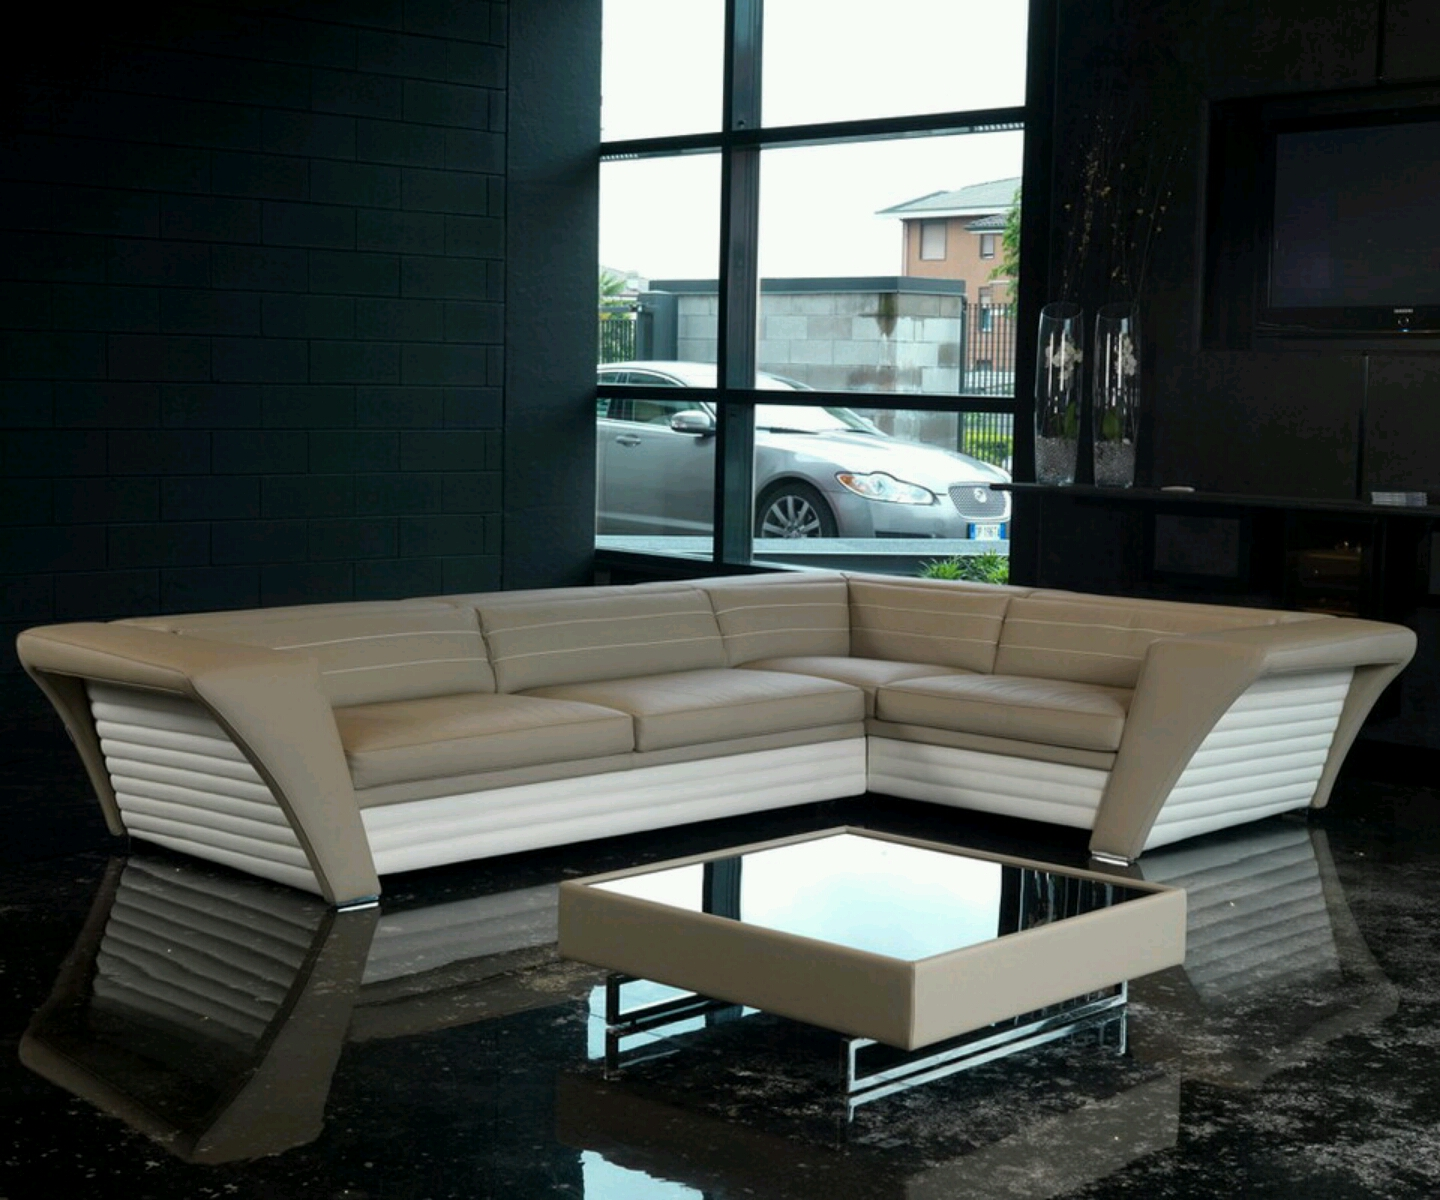 Modern sofa new designs an interior design for New modern furniture